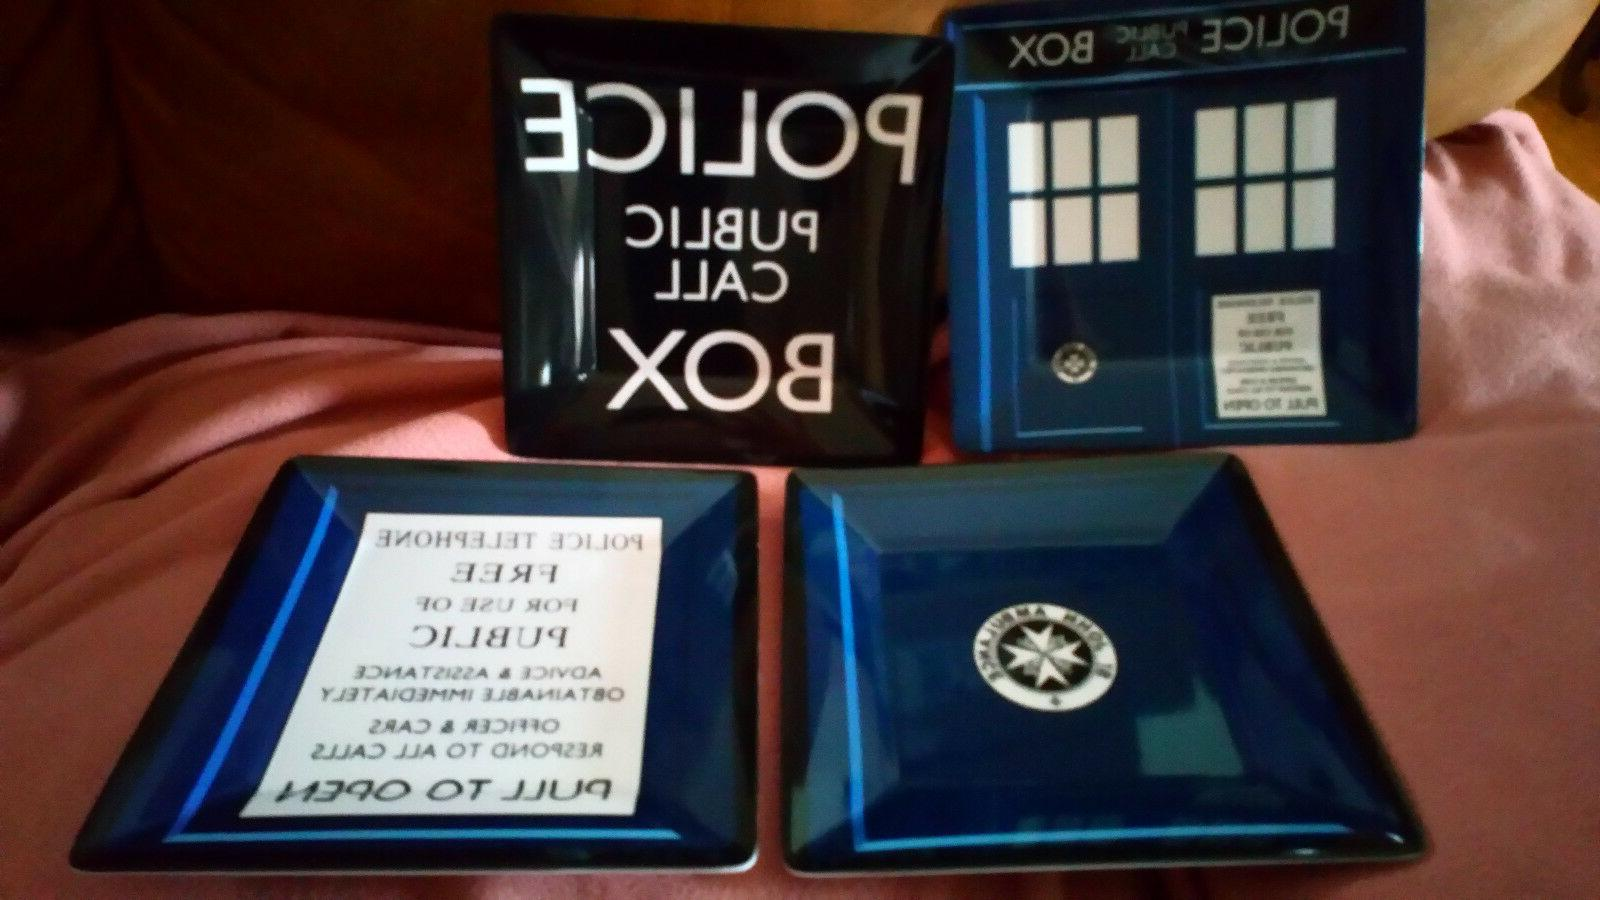 dr who dinner plates 4 set of